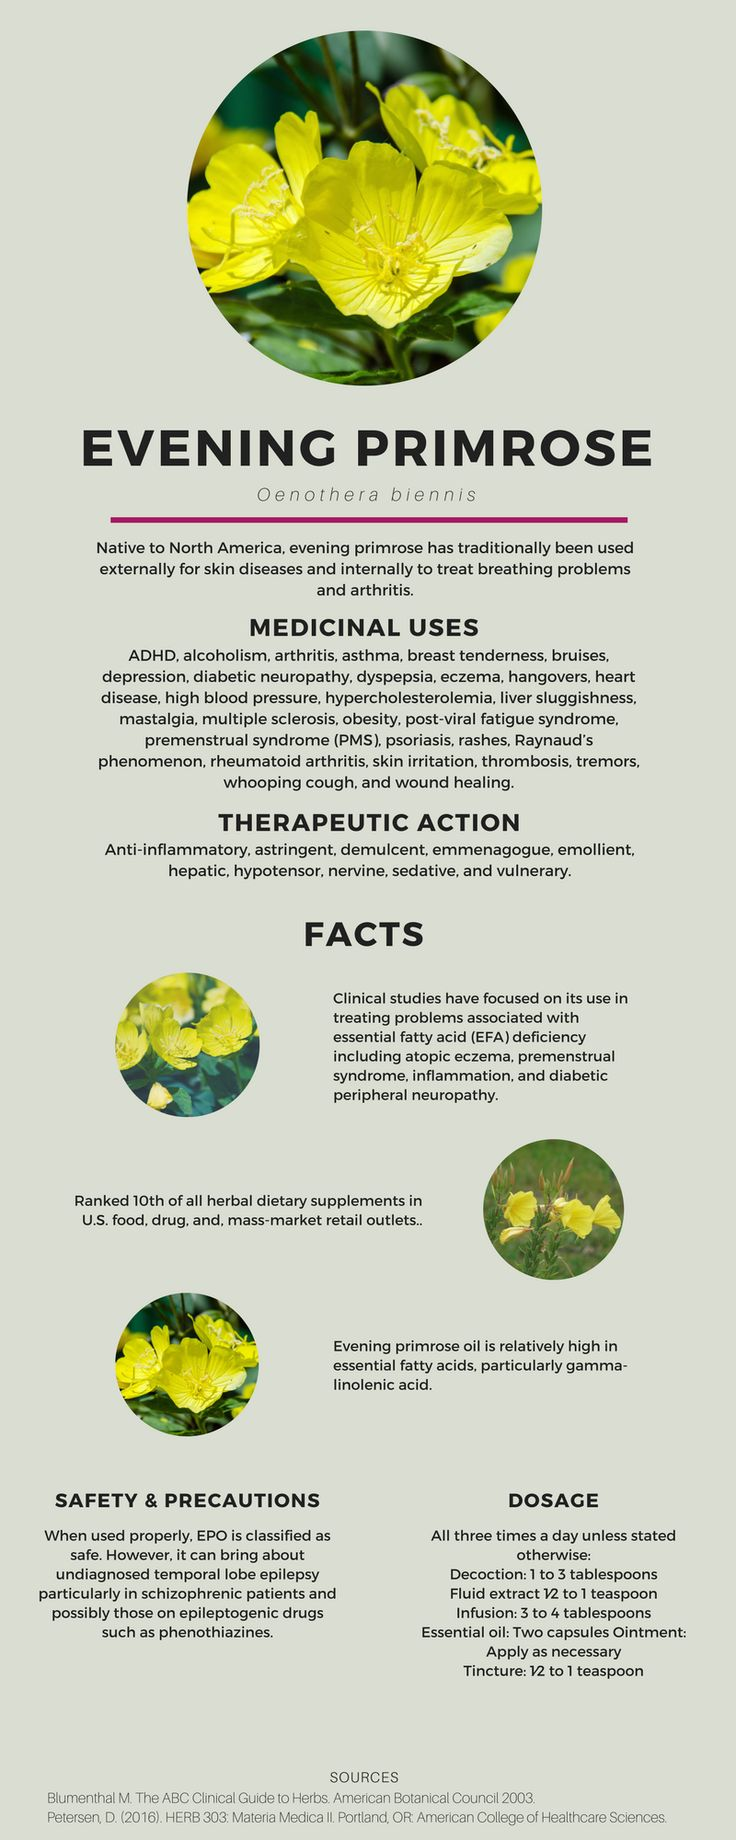 Evening primrose benefits and uses